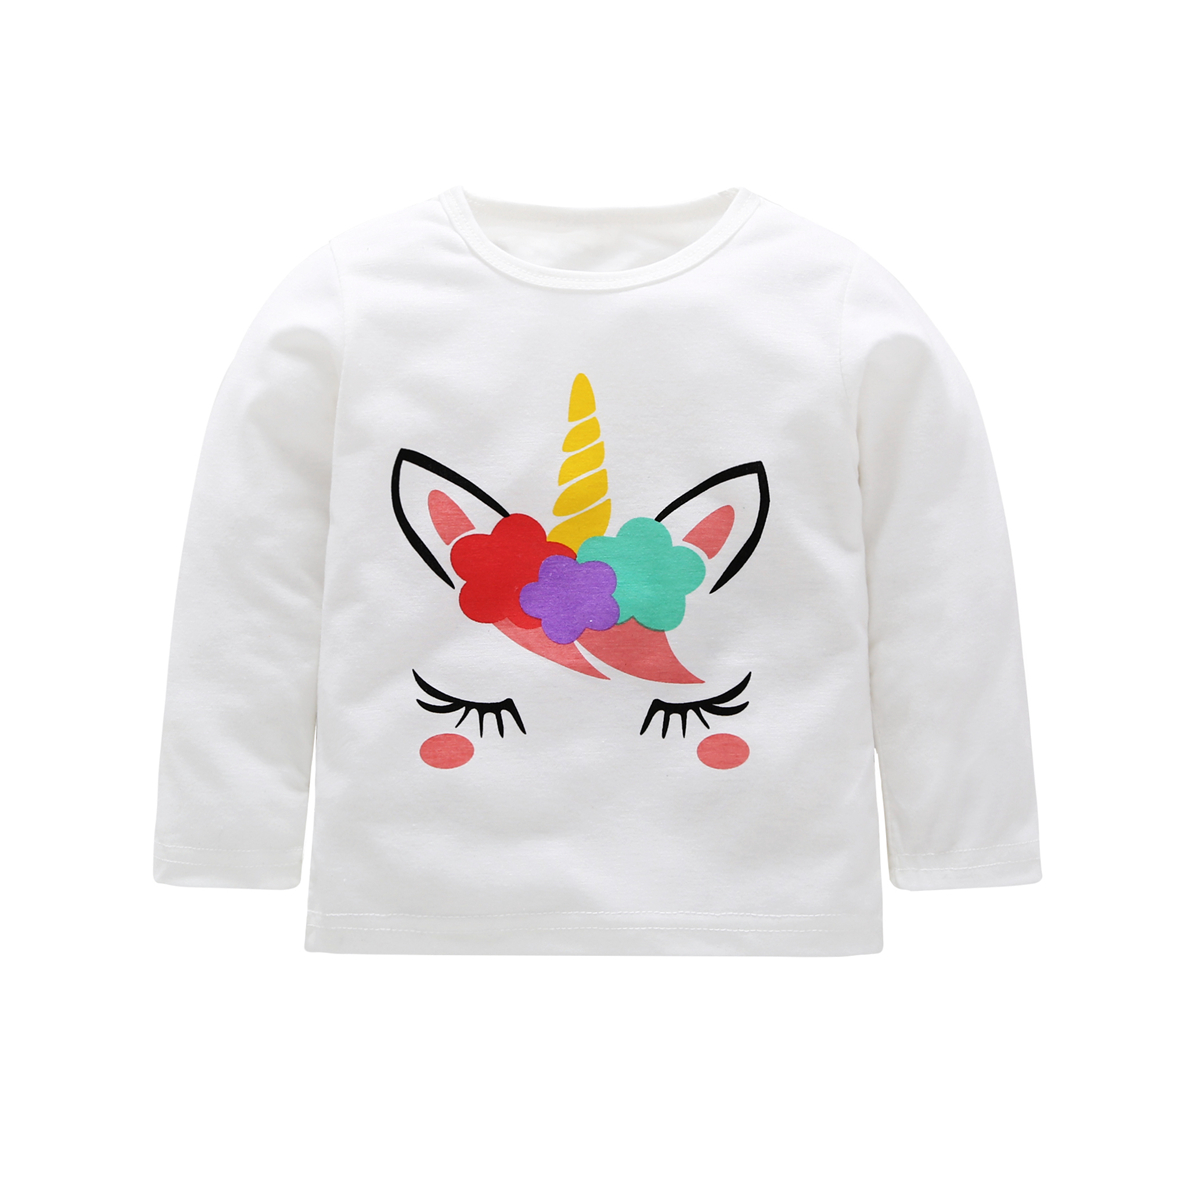 0-5Y Kid Girl Top Baby T-shirt Autumn Kids Spring Clothes Cotton Clothing Children T Shirts Cartoon Unicorn Toddler Tops White girls hello kitty happy birthday t shirts 2017 brand cartoon toddler girl dresses spring autumn girl dress